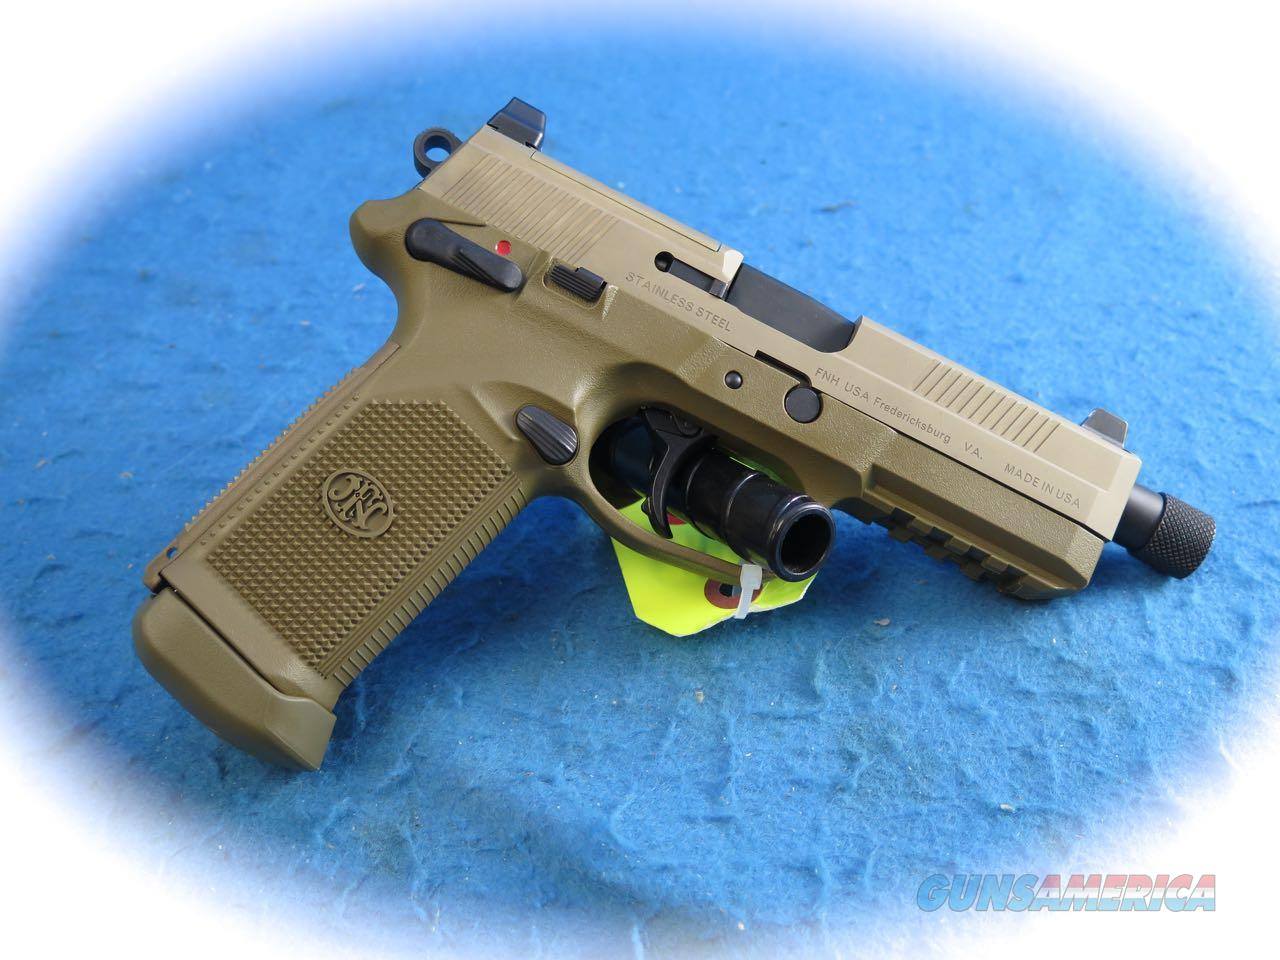 FNH FNX Tactical .45 ACP Pistol FDE W/ Threaded BBL **New**  Guns > Pistols > FNH - Fabrique Nationale (FN) Pistols > FNX